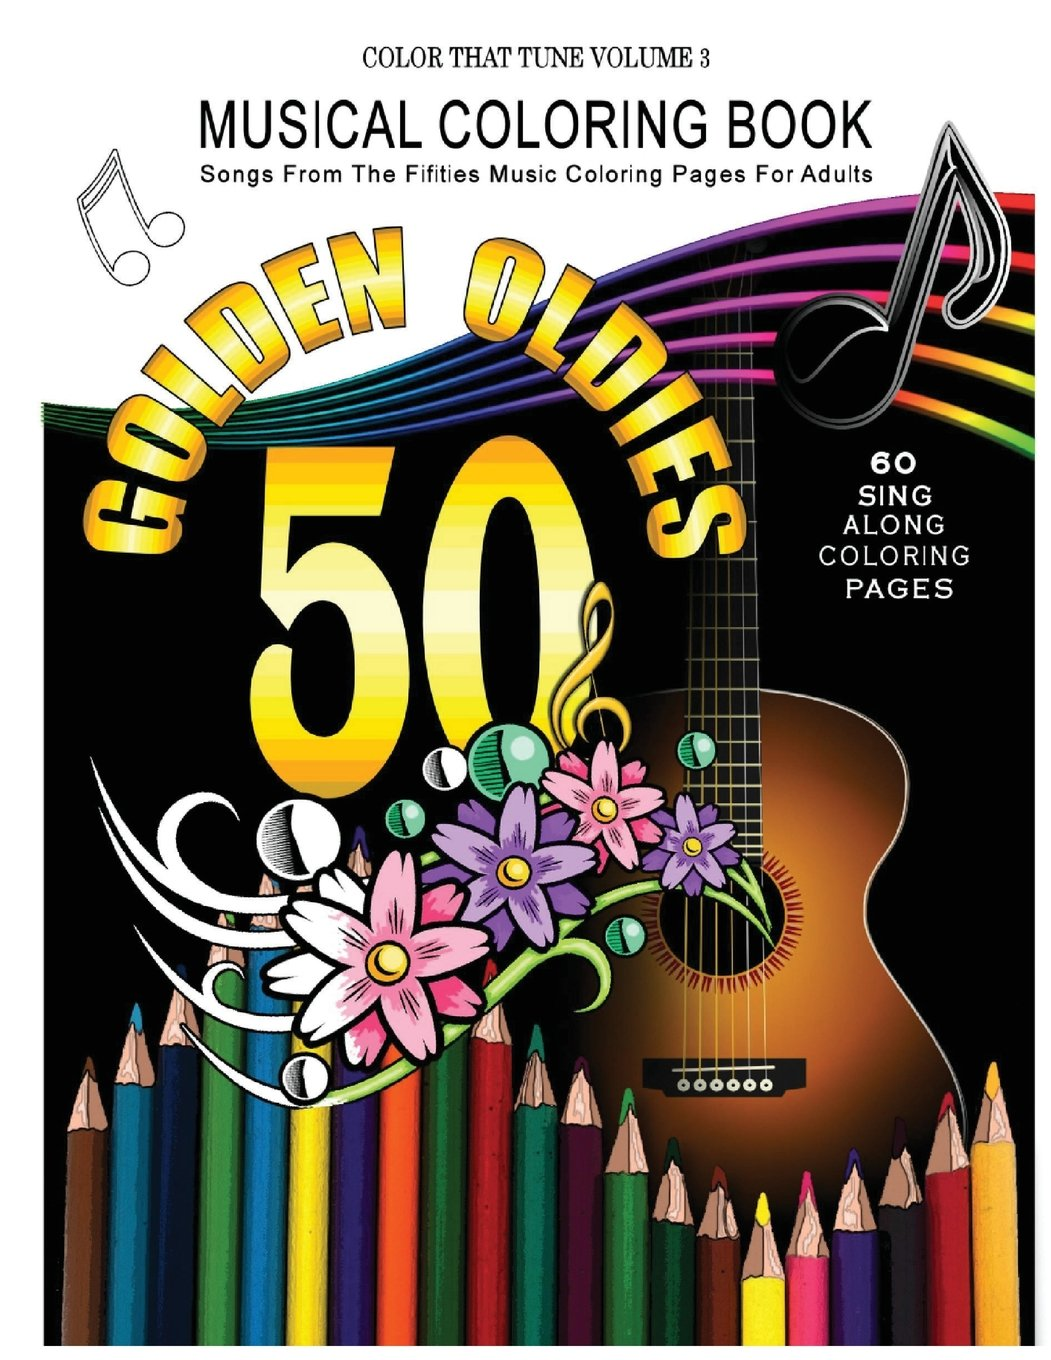 Amazon.com: Musical Coloring Book: Songs From The Fifties Music ...